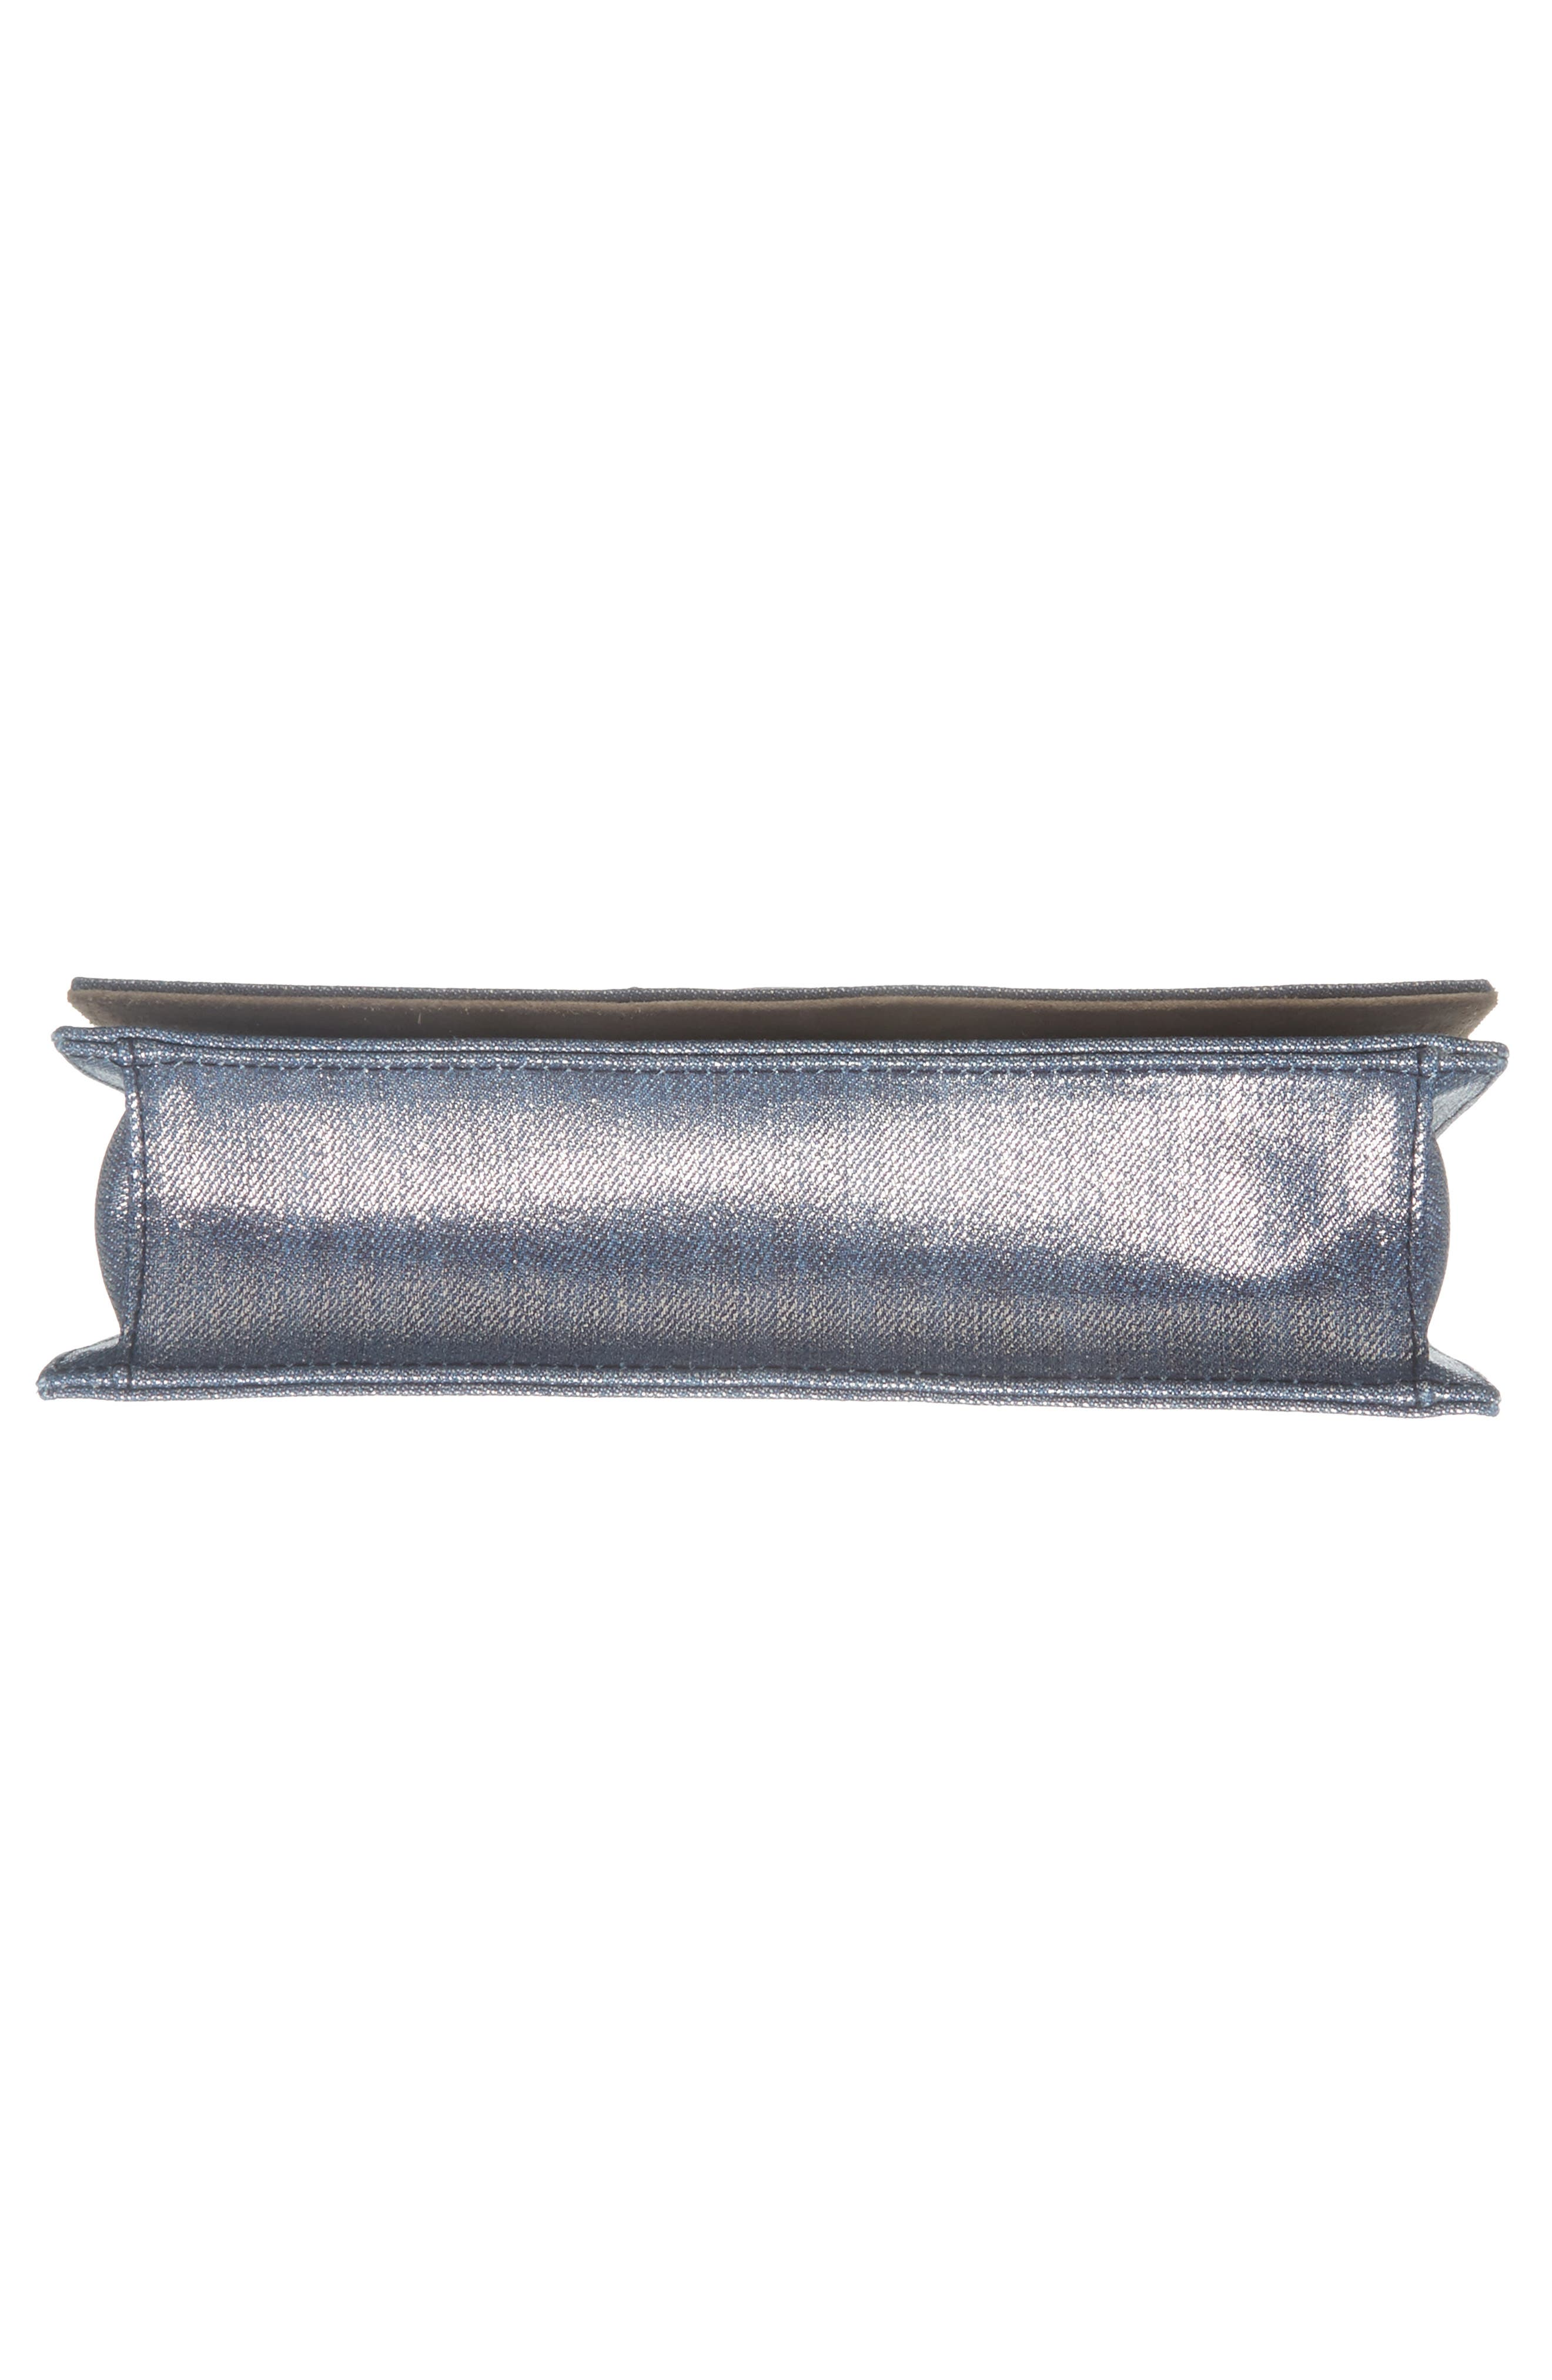 Florence Metallic Denim Glitter Clutch,                             Alternate thumbnail 6, color,                             Dusk Blue